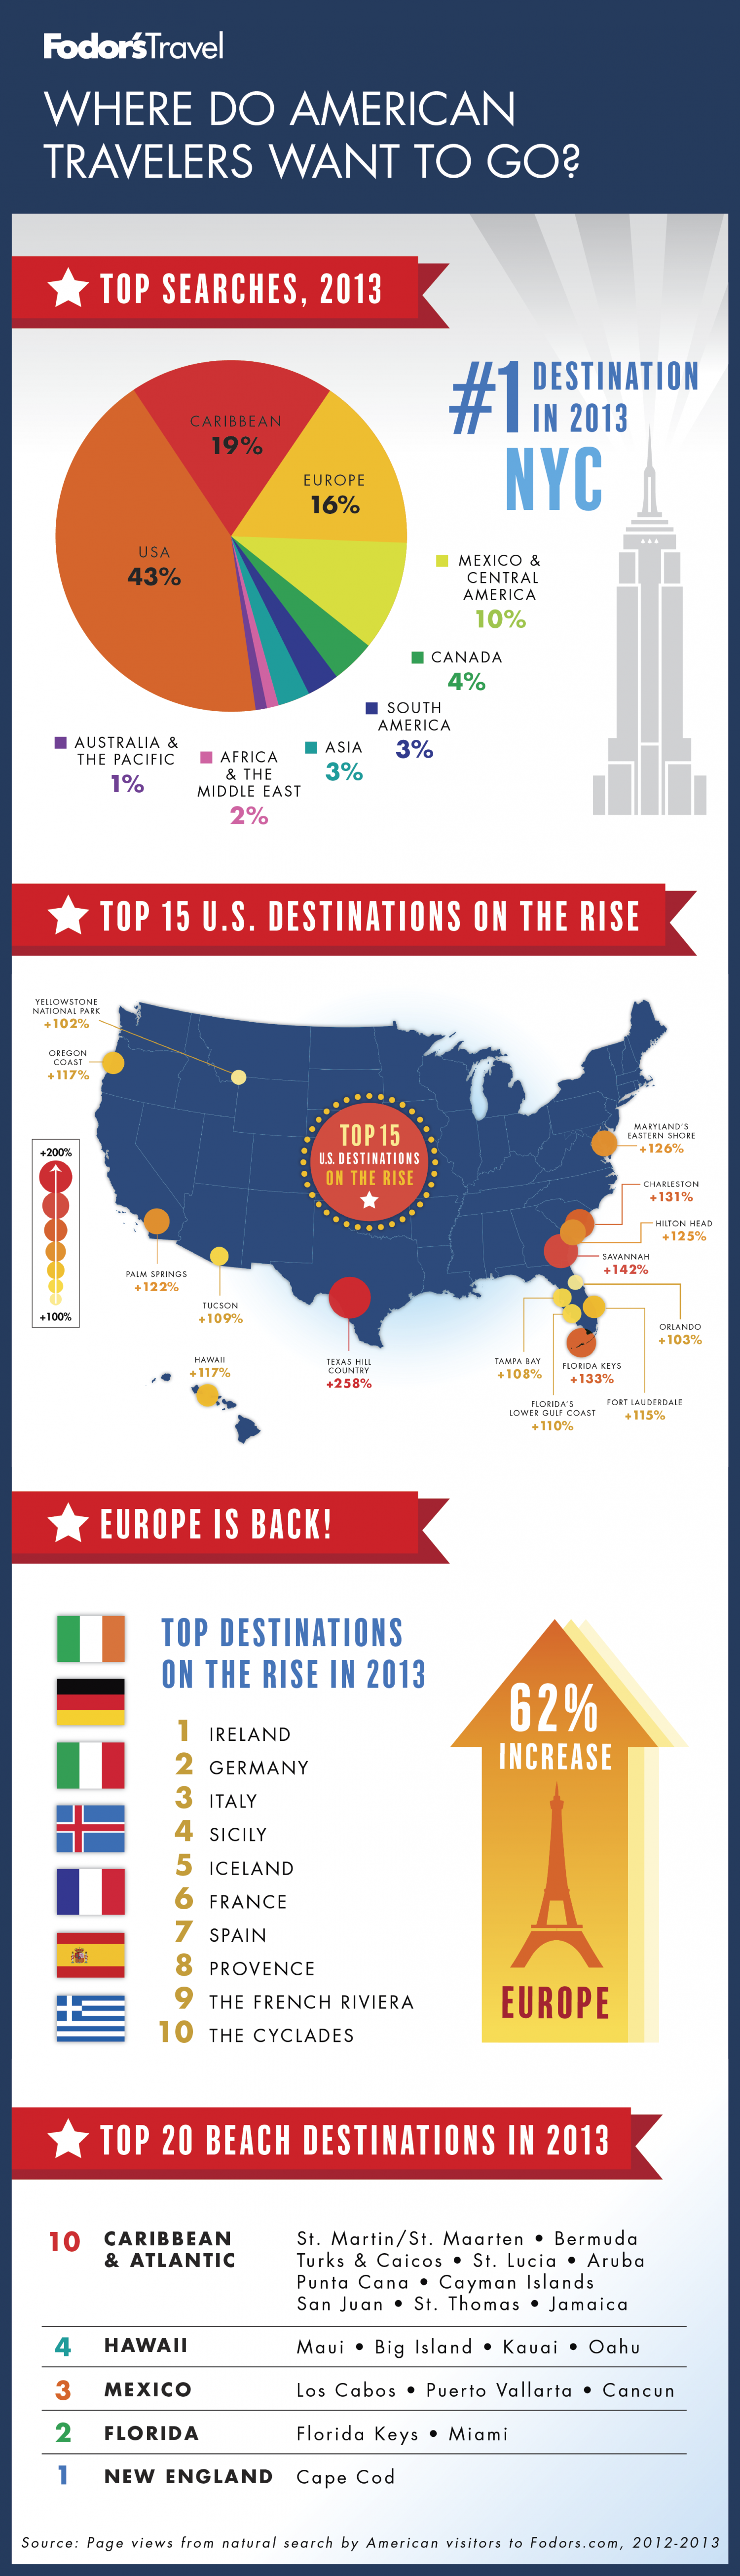 Where Do American Travelers Want to Go? Infographic